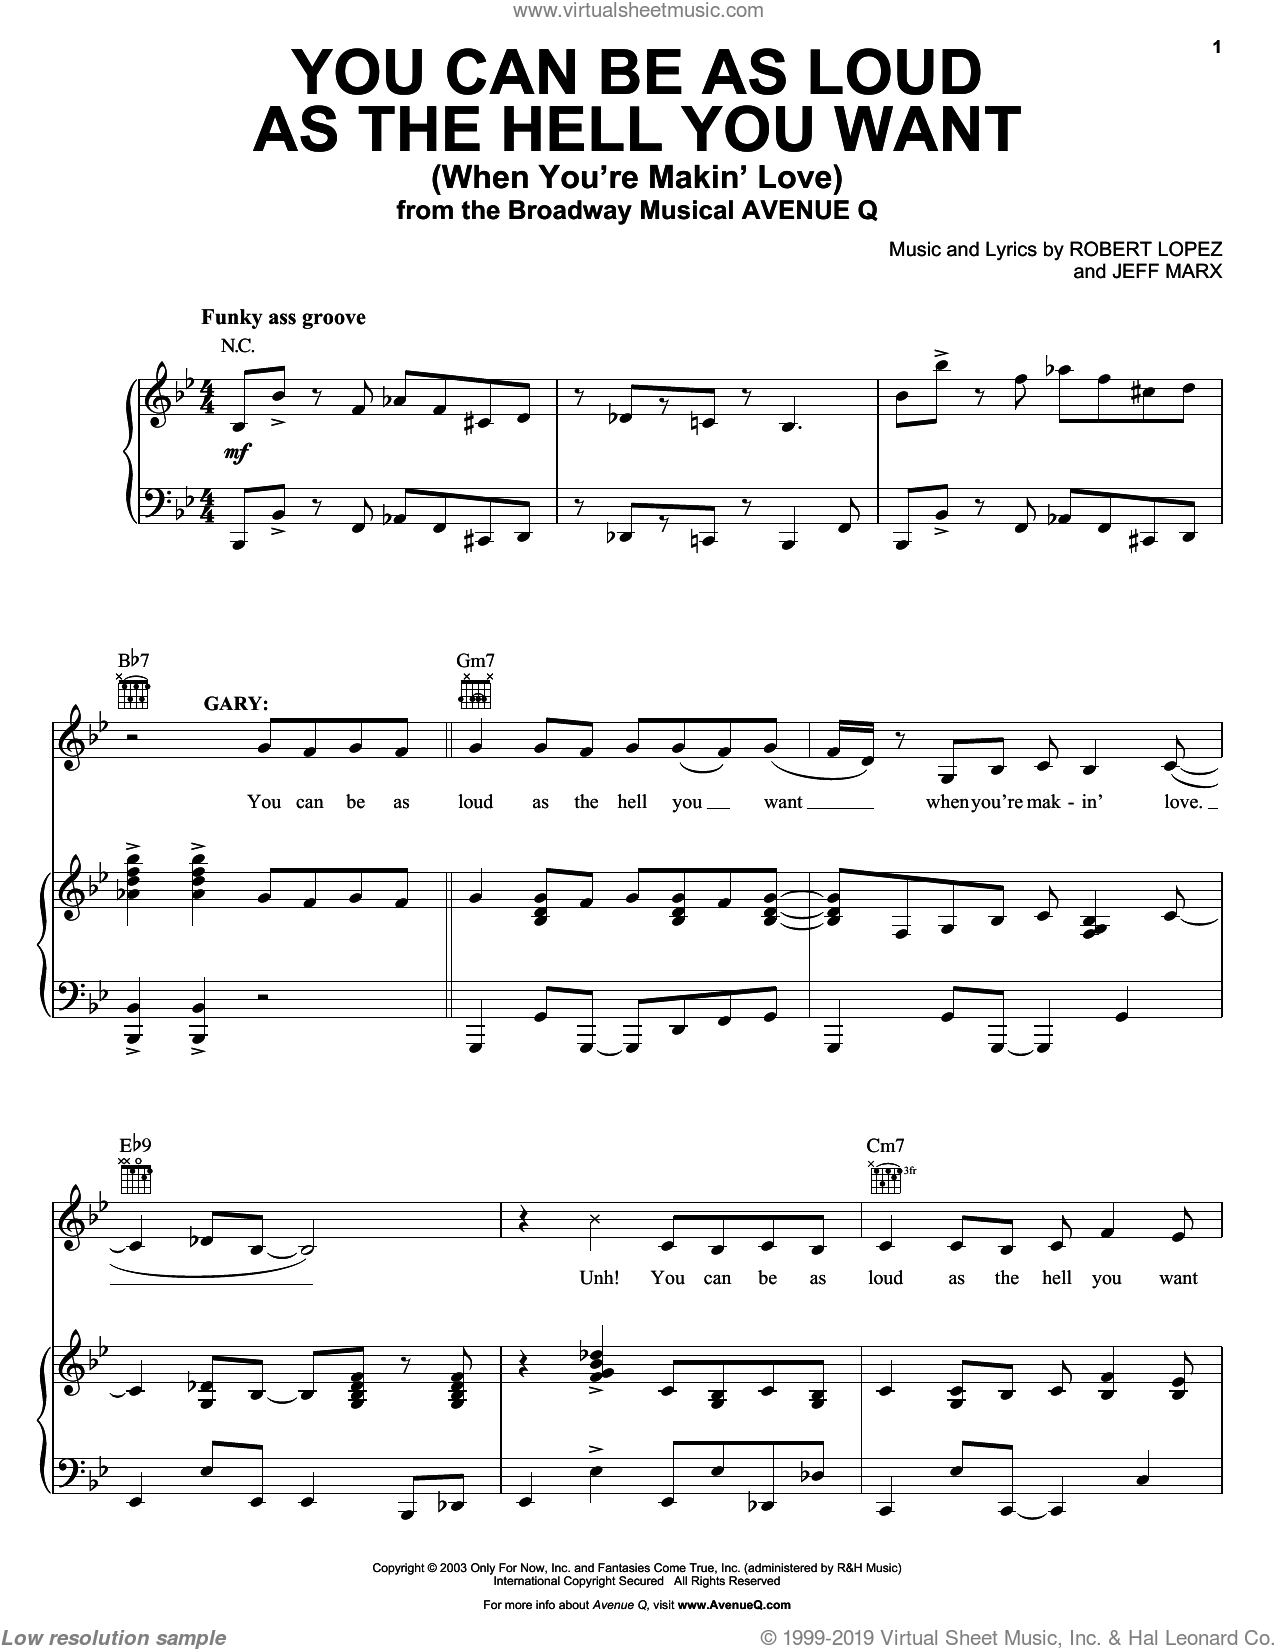 You Can Be As Loud As The Hell You Want (When You're Makin' Love) sheet music for voice, piano or guitar by Avenue Q, Jeff Marx and Robert Lopez, intermediate skill level